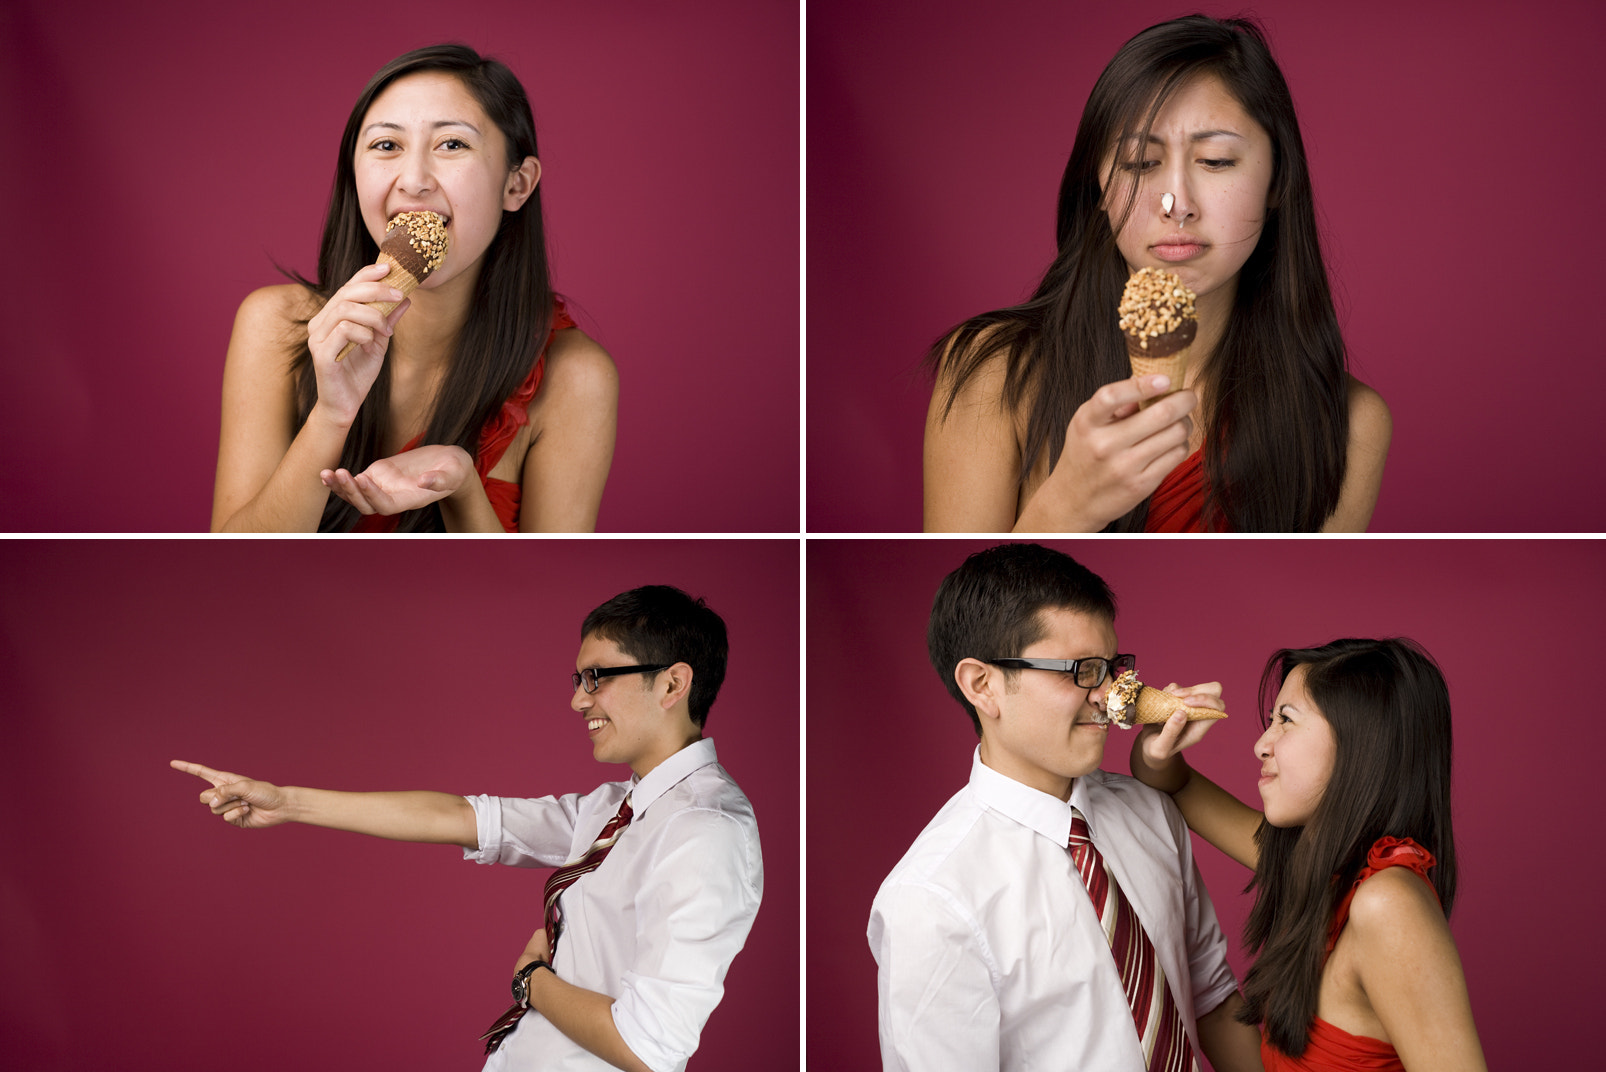 Photograph Nicole & Luis by Kevin Truong on 500px